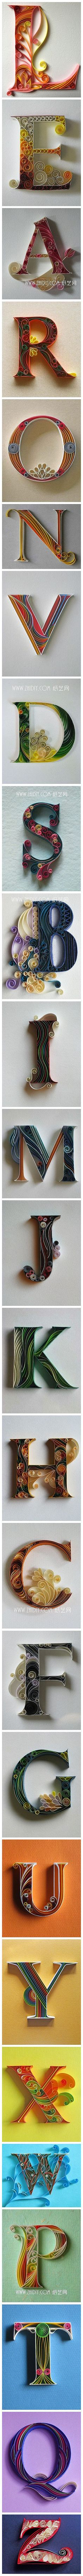 Paper Letters- Quilling